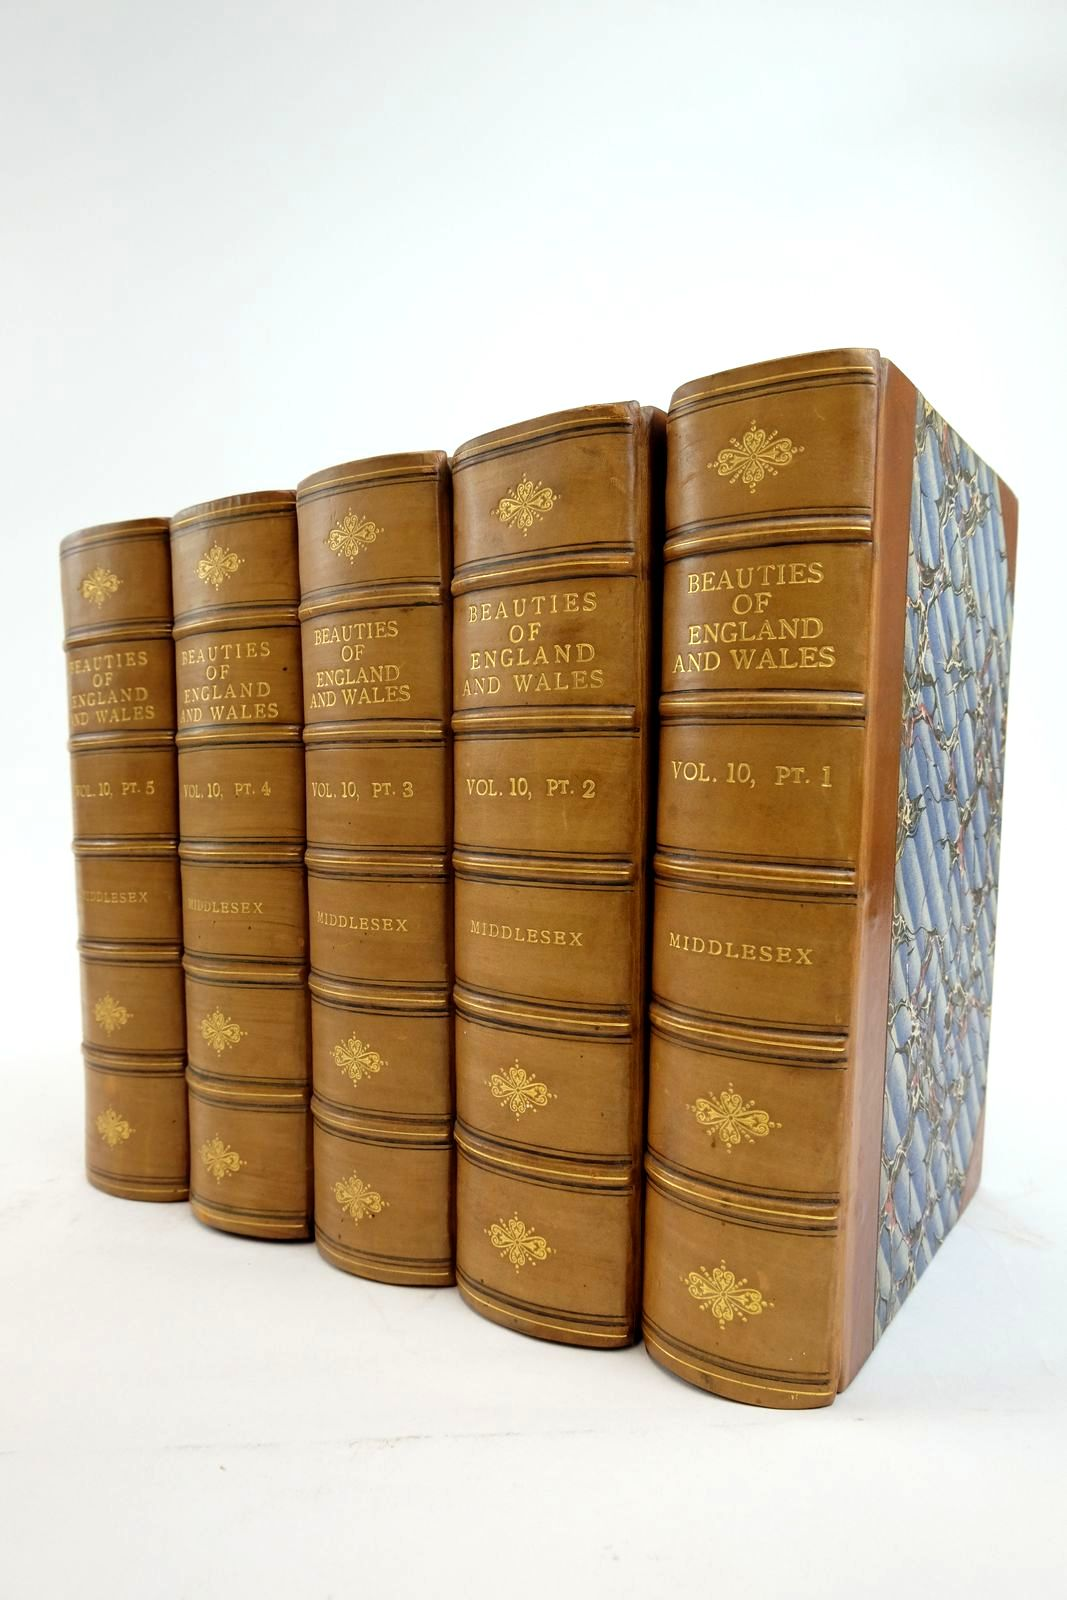 Photo of THE BEAUTIES OF ENGLAND AND WALES VOL. X PARTS 1 - 5 (5 VOLUMES) written by Brayley, Edward Wedlake published by Vernor, Hood & Sharpe (STOCK CODE: 2134981)  for sale by Stella & Rose's Books